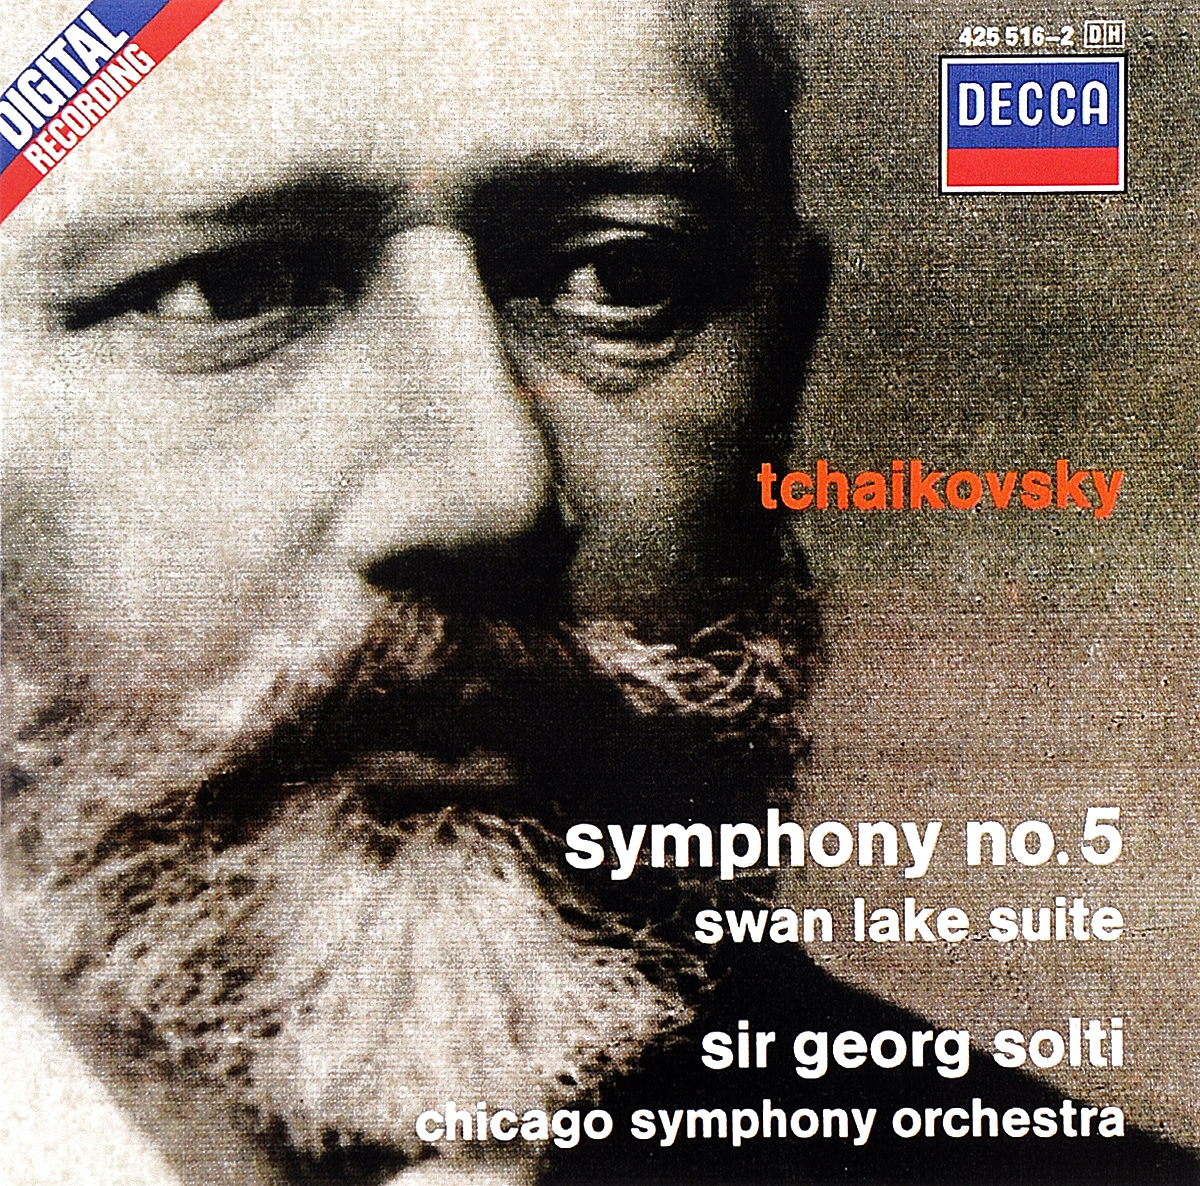 Chicago Symphony Orchestra,Георг Шолти,Рубен Гонсалес,Джон Шарп,Edward Druzinsky Sir Georg Solti. Tchaikovsky. Symphony No. 5 / Swan Lake Suite